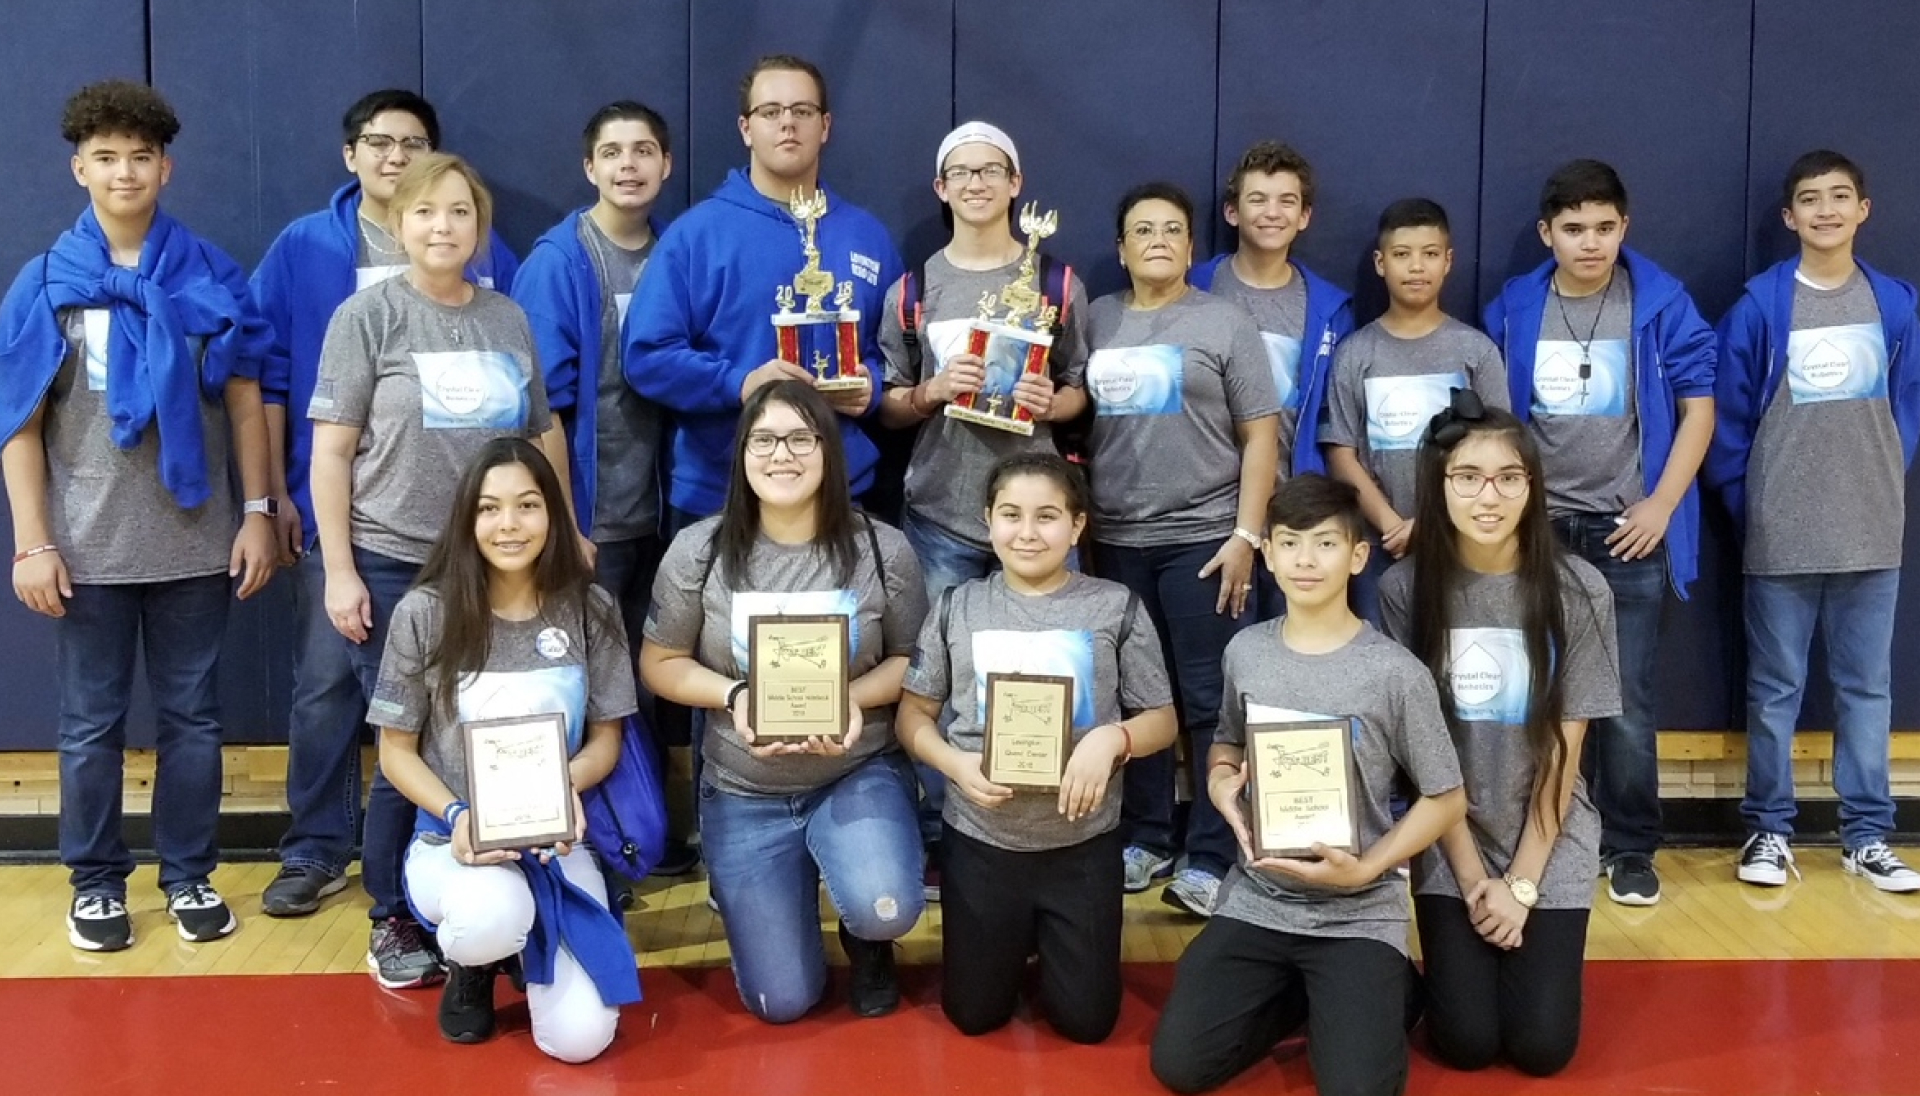 The Lovington Robocats Robotics Team at a 2019 regional competition in Dallas, Texas.